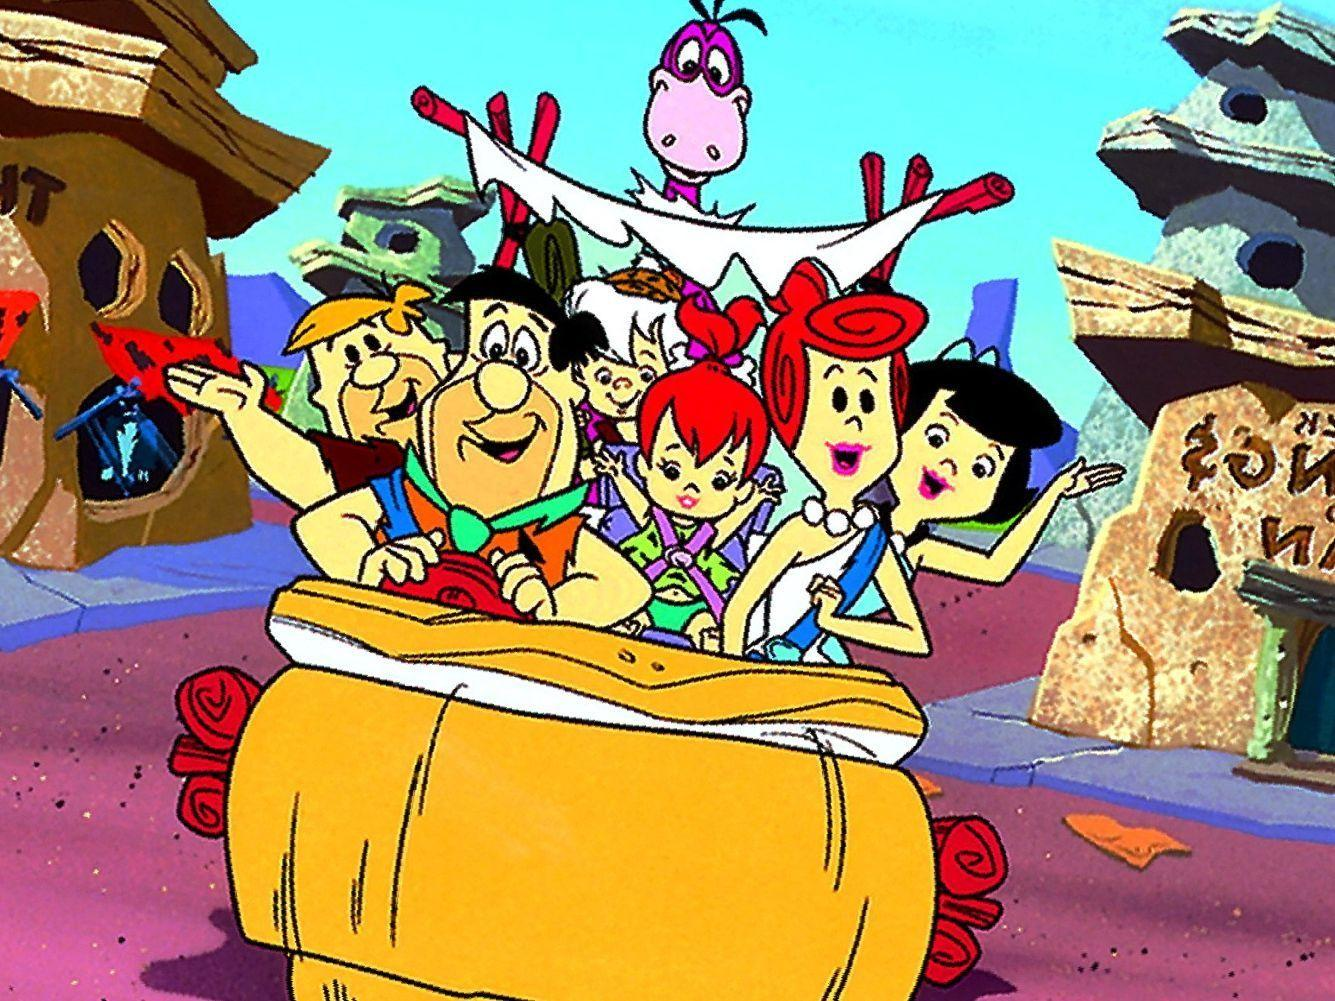 Flintstone wallpapers and image